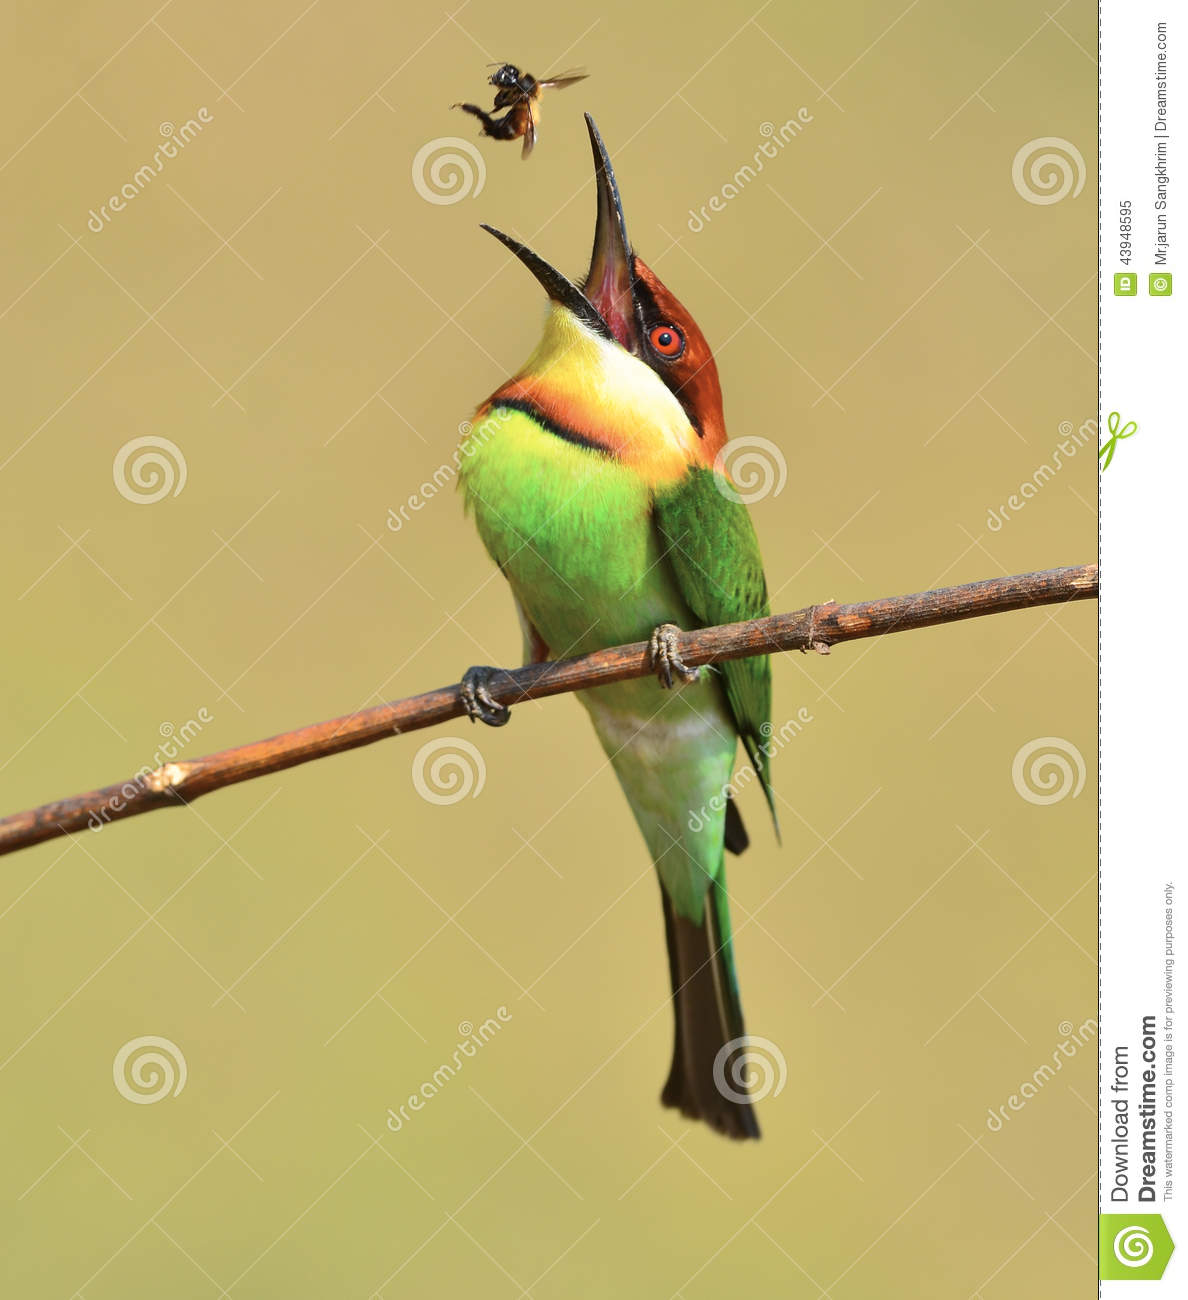 Bee-eater clipart #15, Download drawings